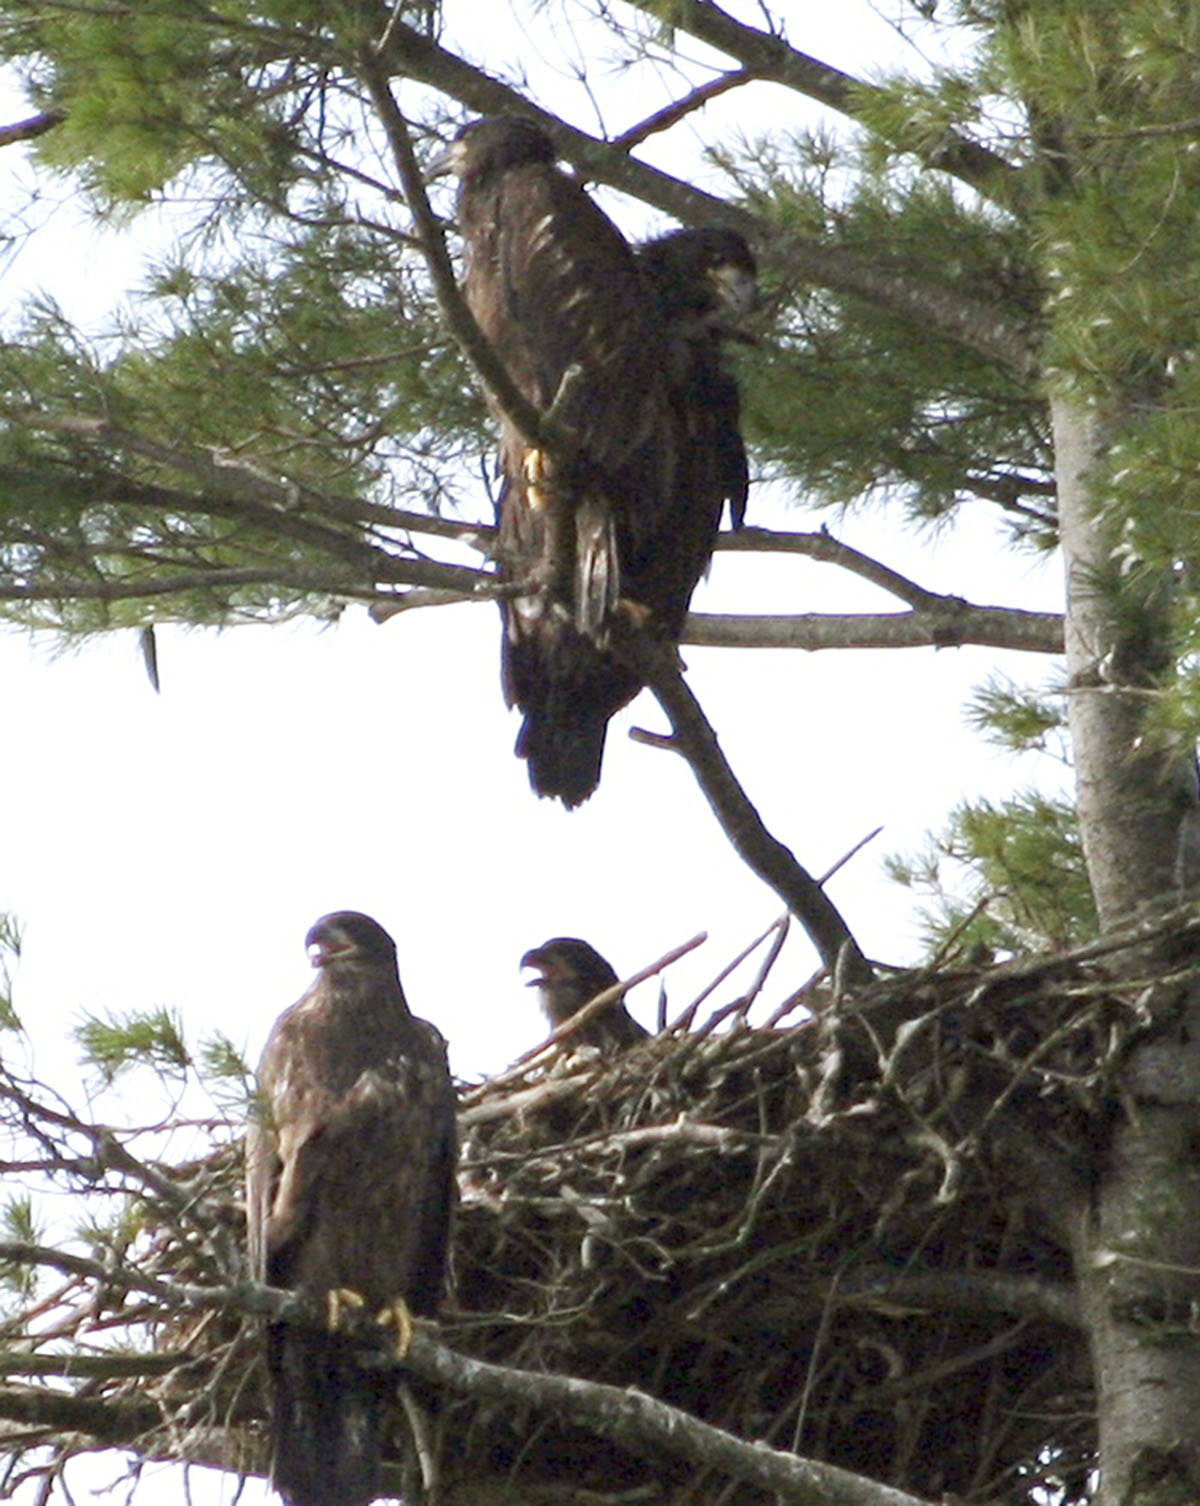 This photo released by the Maine Department of Inland Fisheries & Wildlife shows four bald eaglets in a single nest on Swan Island in the Kennebec River near Richmond, Maine. It is the first documented case of four eaglets in the same nest in the state's history.